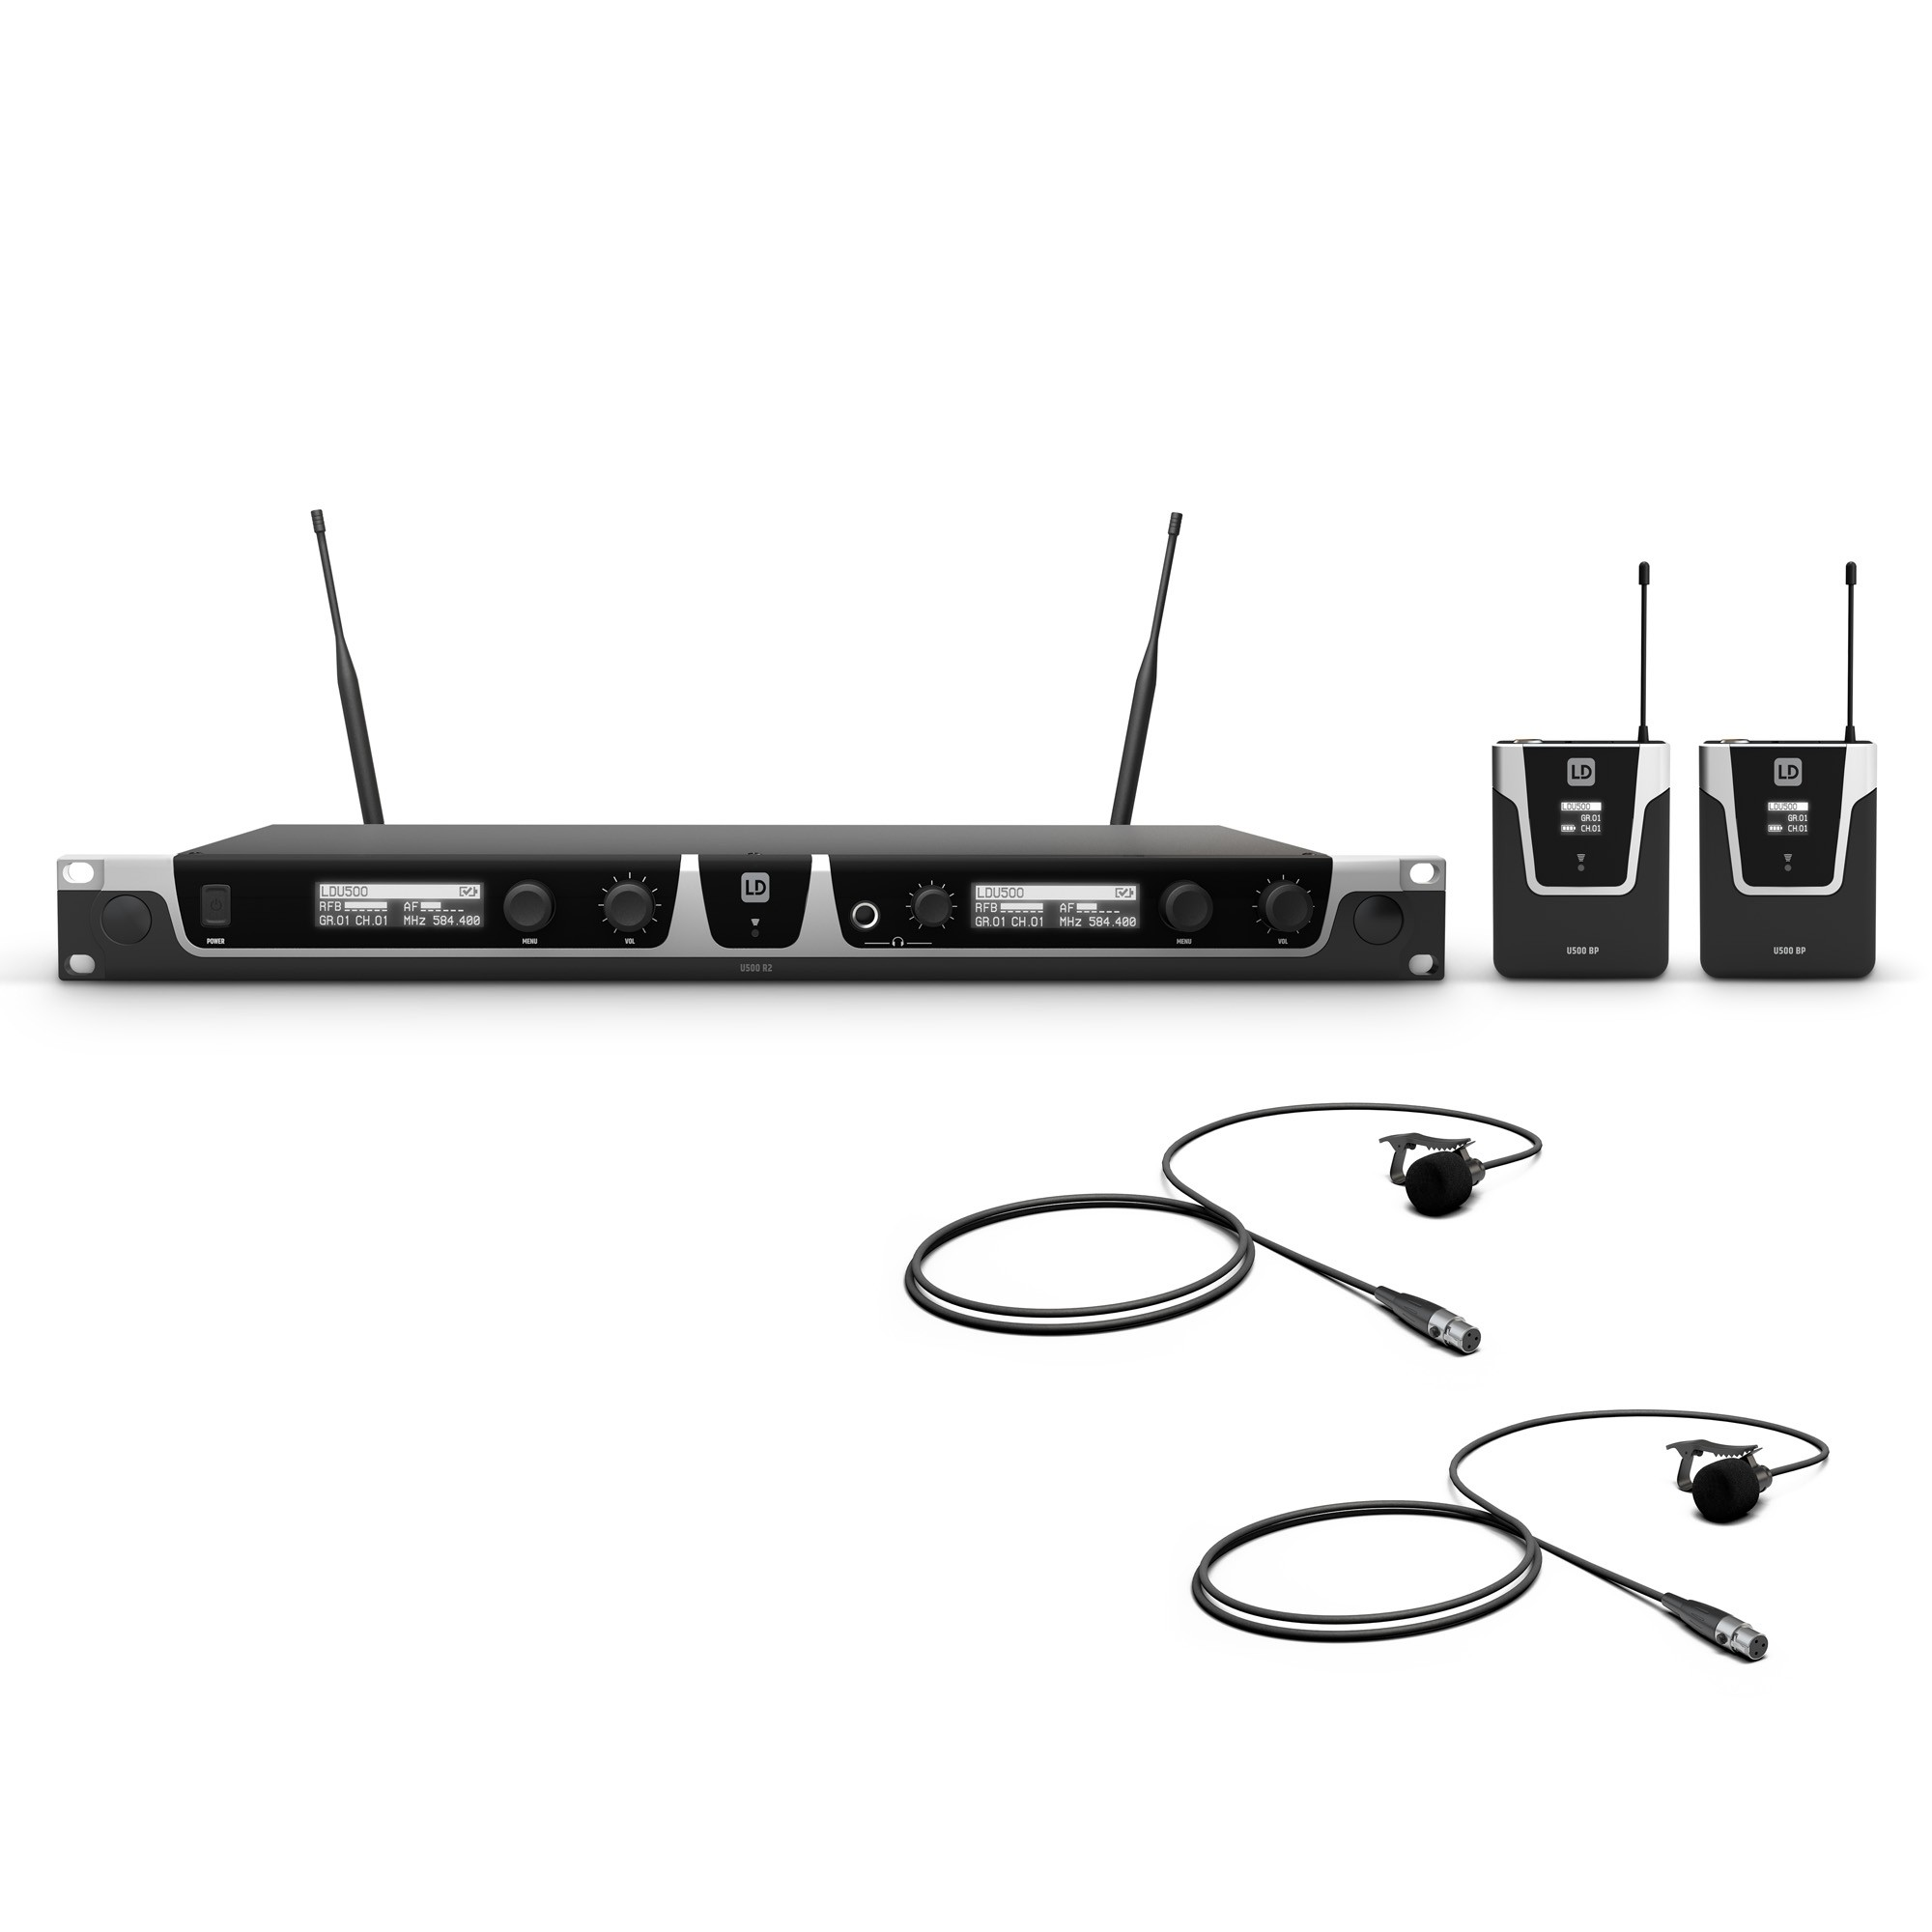 U506 BPL 2 Wireless Microphone System with 2 x Bodypack and 2 x Lavalier Microphone